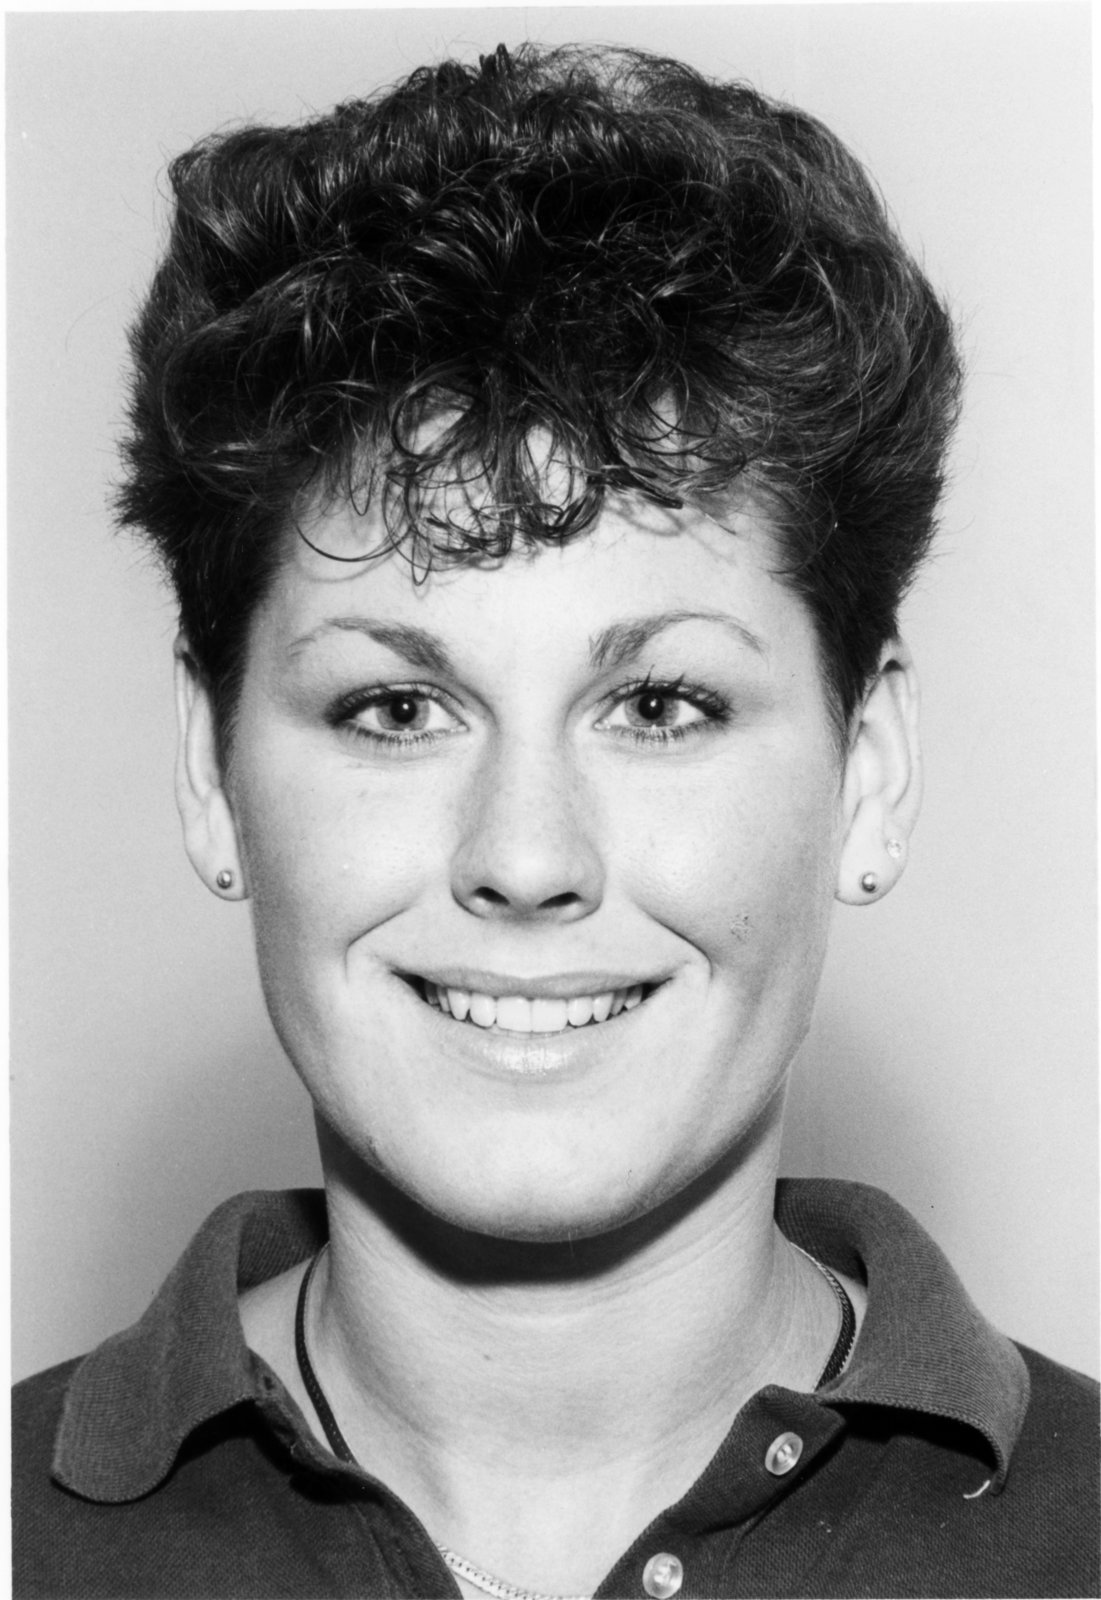 Barb Lockhart, Wilfrid Laurier University basketball player